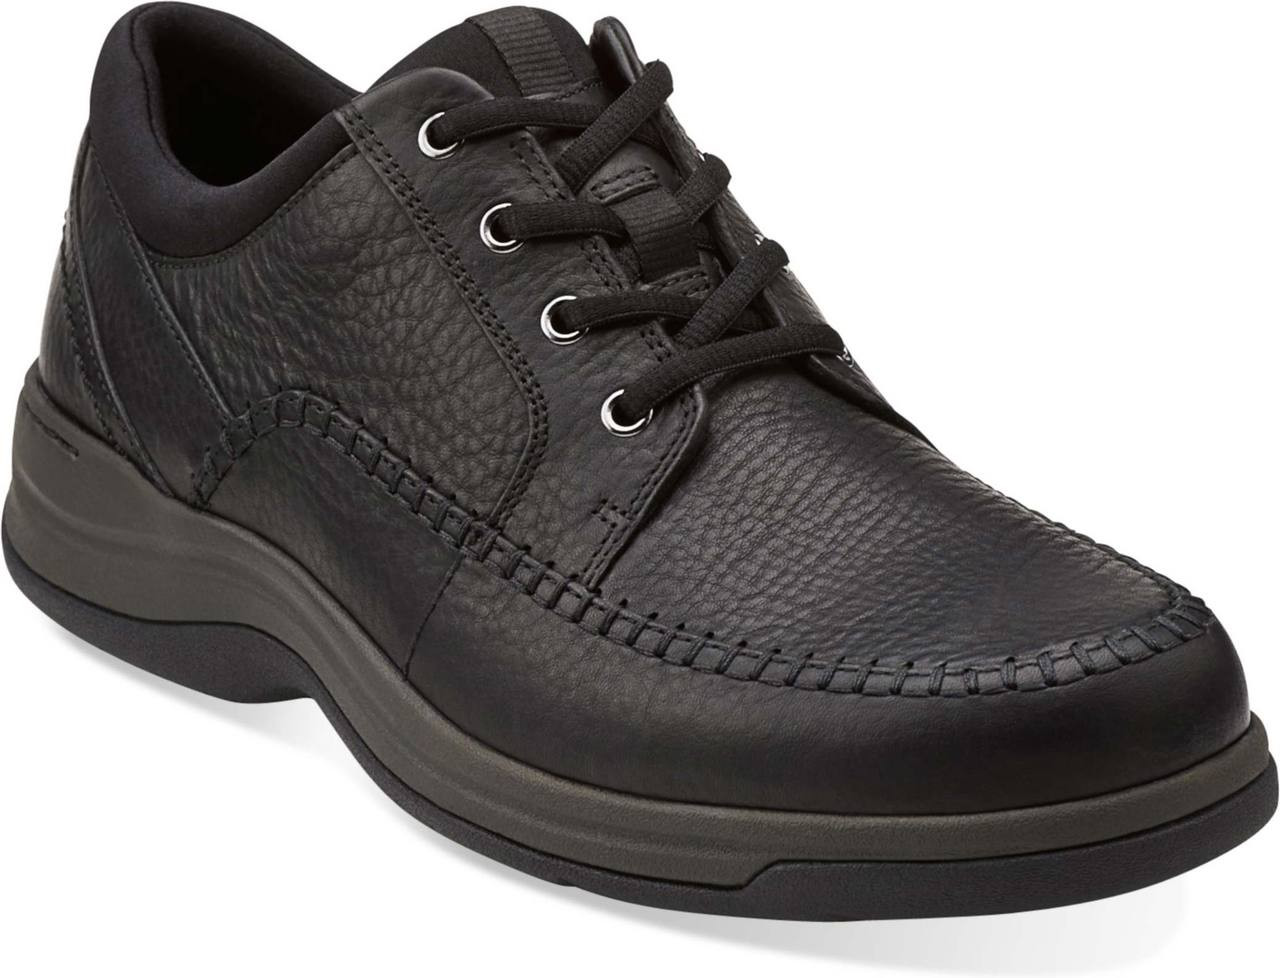 2 Shipping Sneakers Clarks Returns amp; Tie Free Men's Portland q1EnEcB6